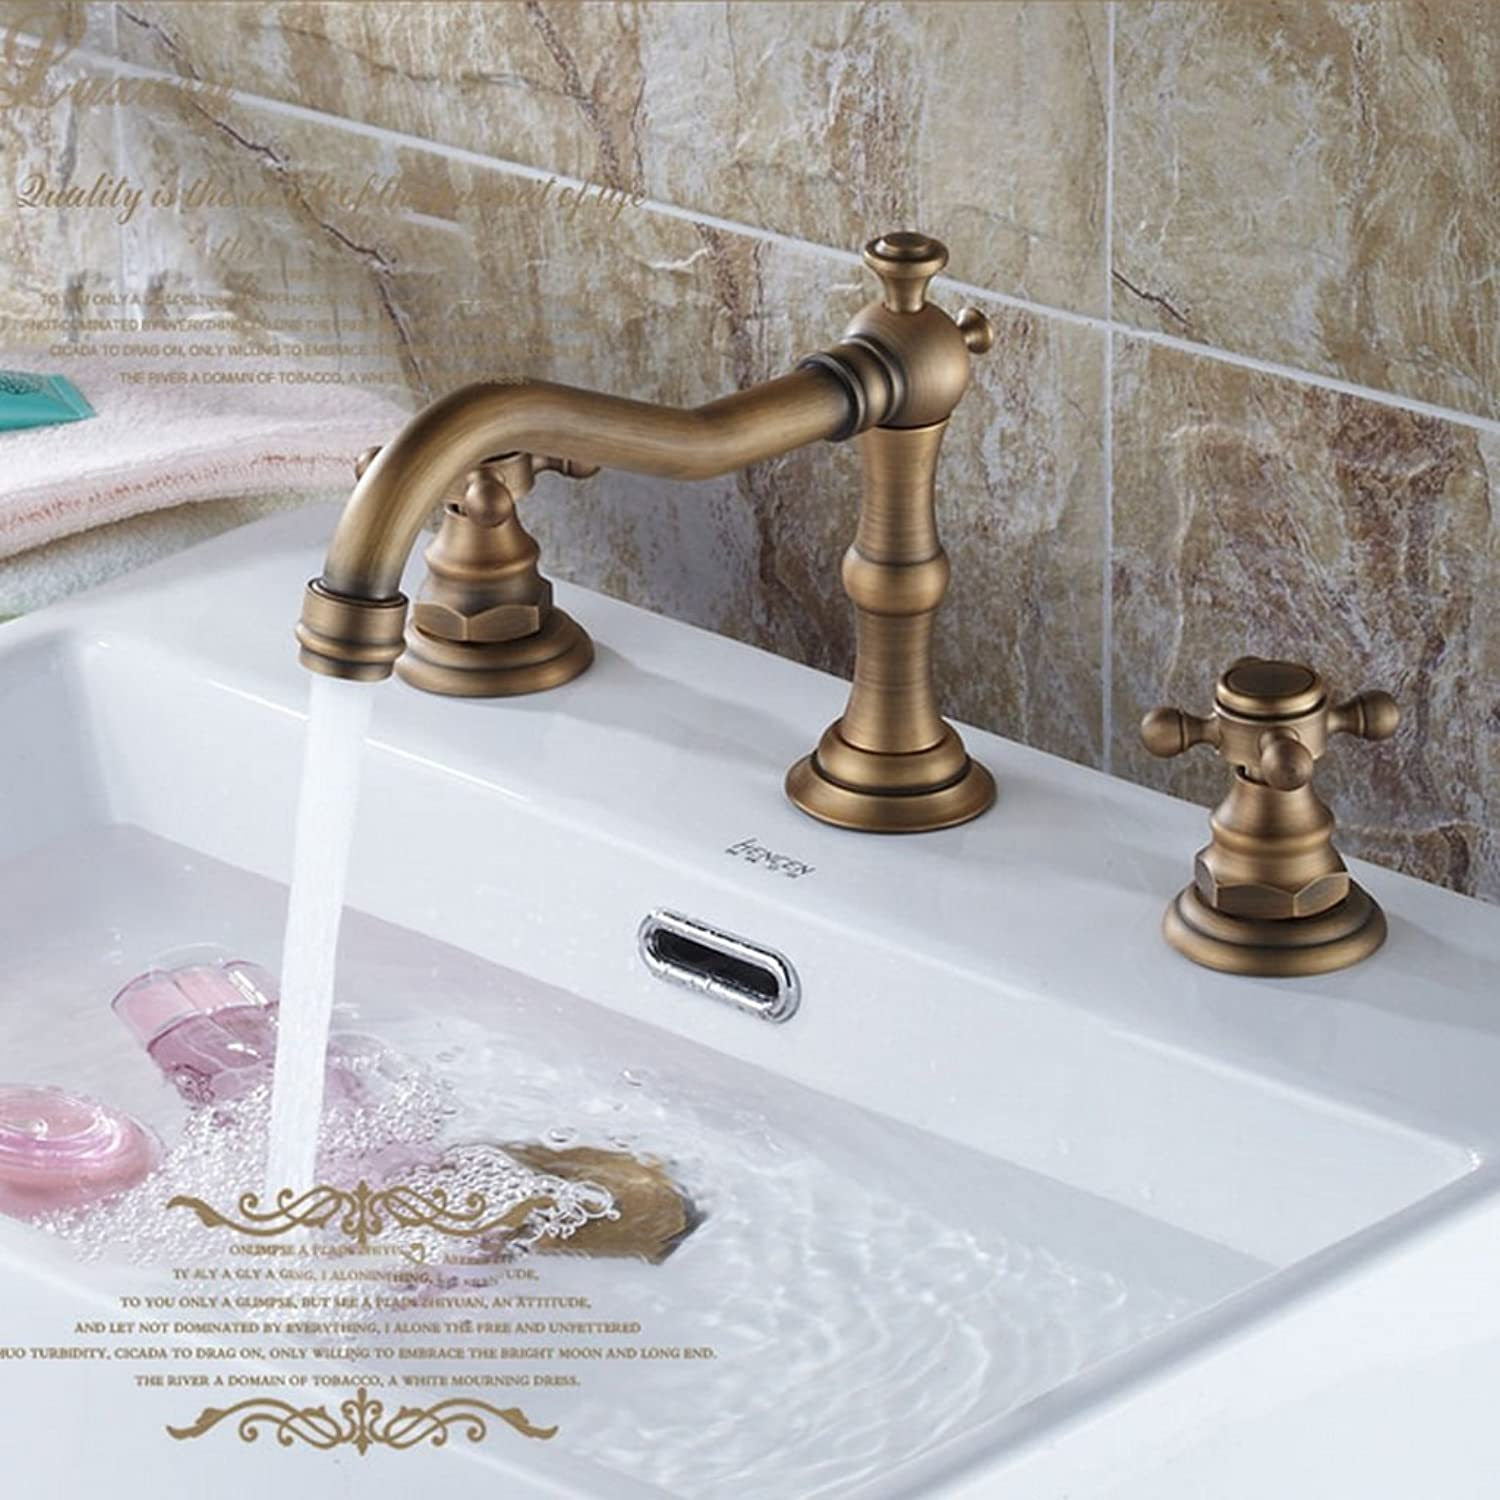 MEILING Full Copper Three Holes Hot And Cold Basin Faucet Leading European Antique Faucet Basin Faucet